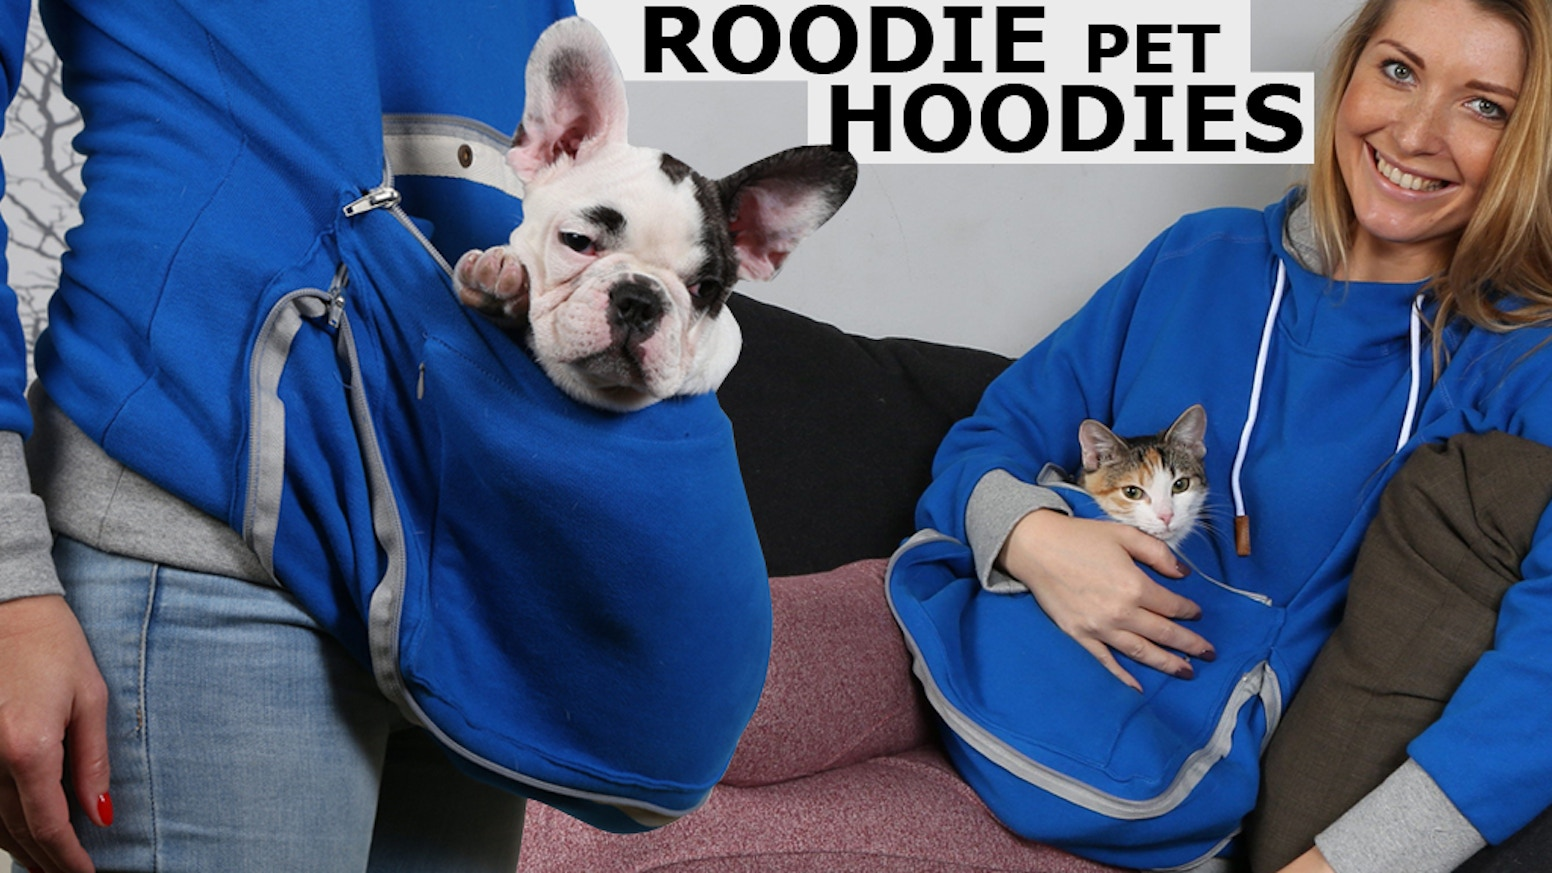 Roodie - Hoodies to Carry and Hang Out With Your Small Dog, Cat or Other Pet in Style.